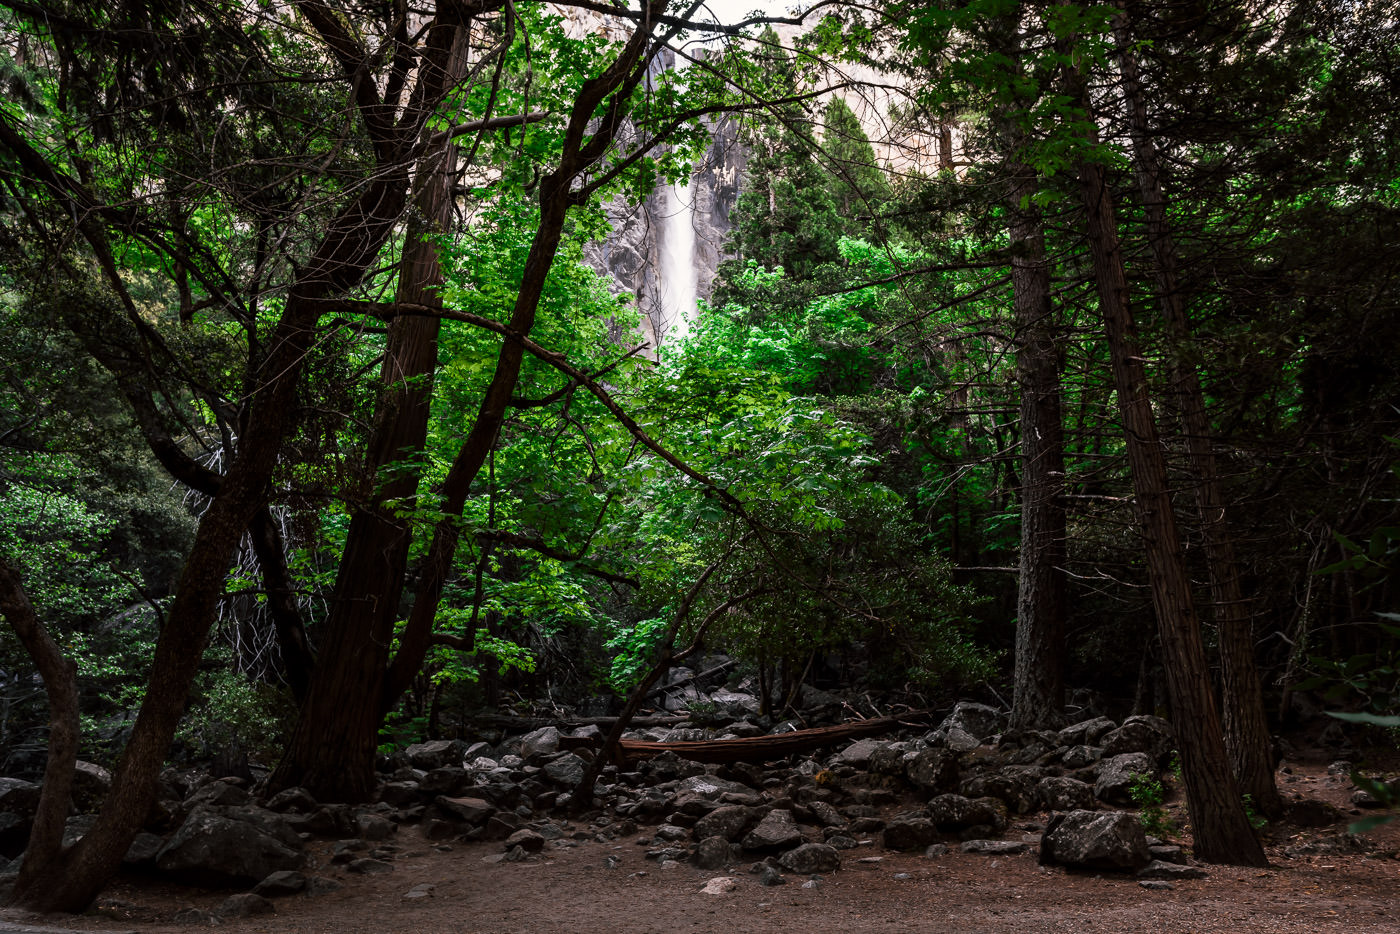 Yosemite elopement photographer captures the Bridalveil Falls wedding ceremony location early in the morning. The ceremony spot has limited room for guests.